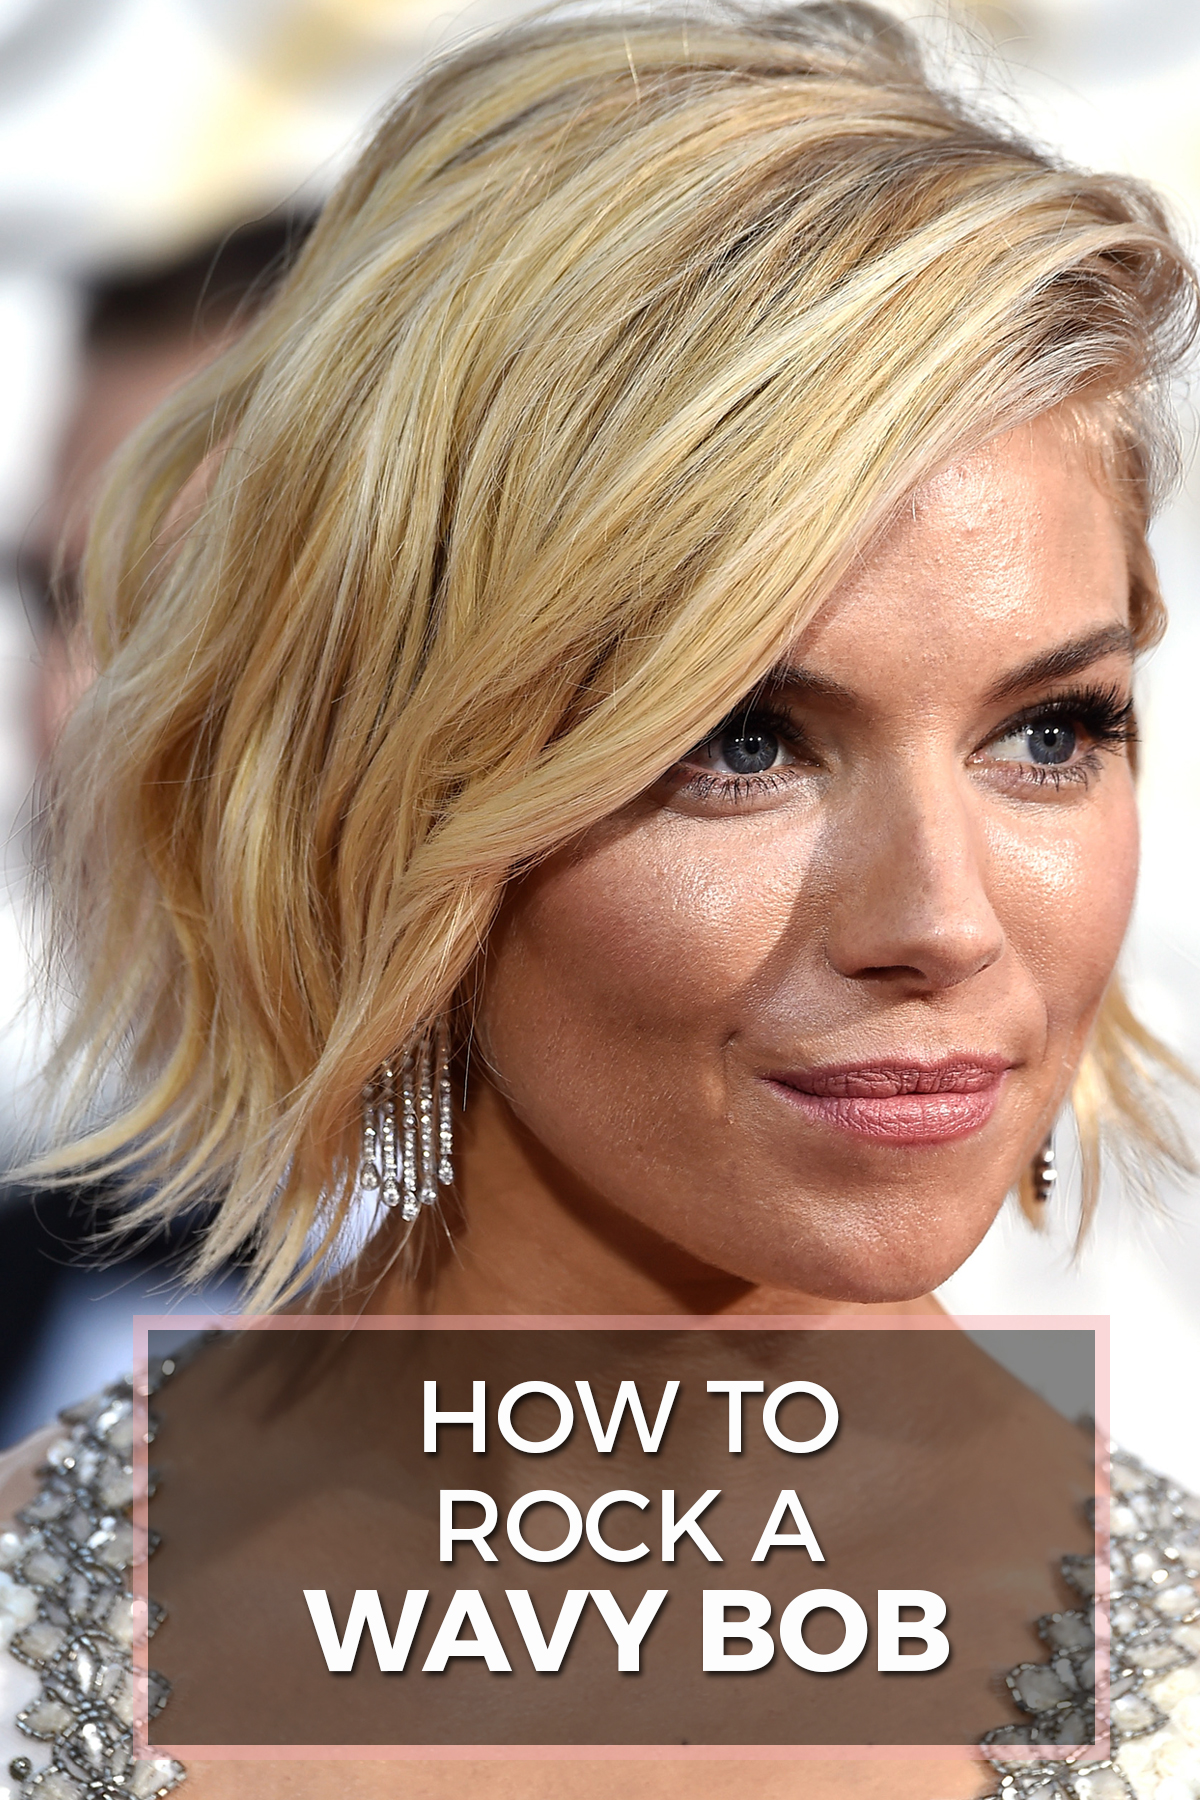 Astounding Wavy Bob Hairstyles How To Rock This Summer39S 39It39 Cut The Short Hairstyles For Black Women Fulllsitofus